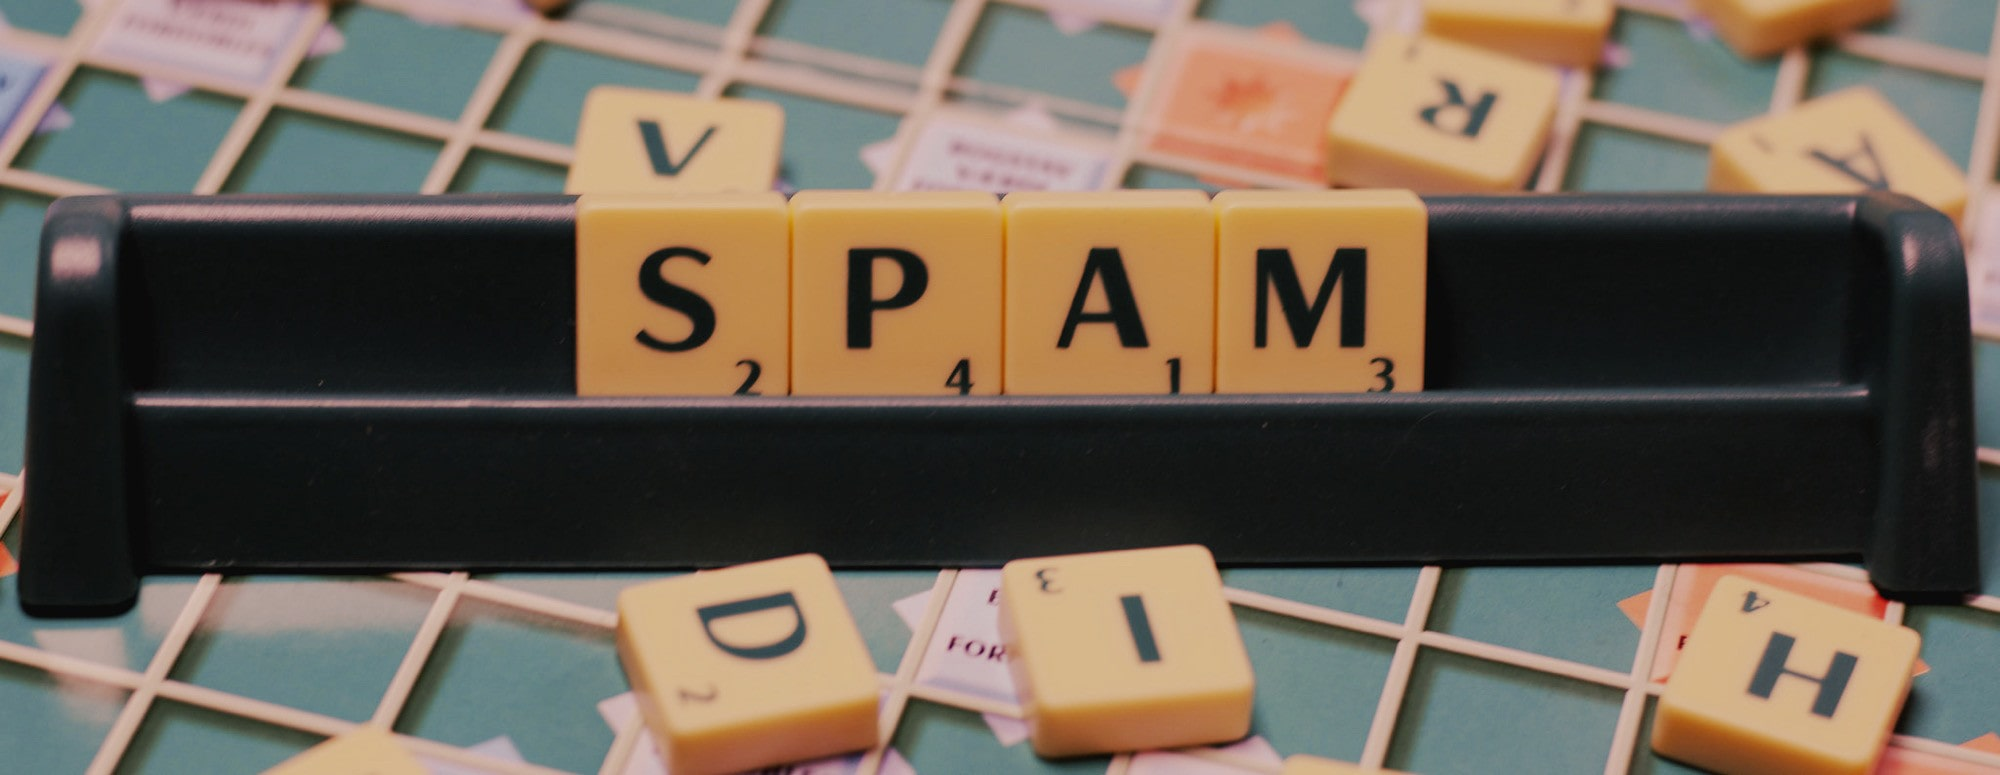 Nobody likes spam. Here's how to stop Apple spam notifications, i.e. marketing notifications.